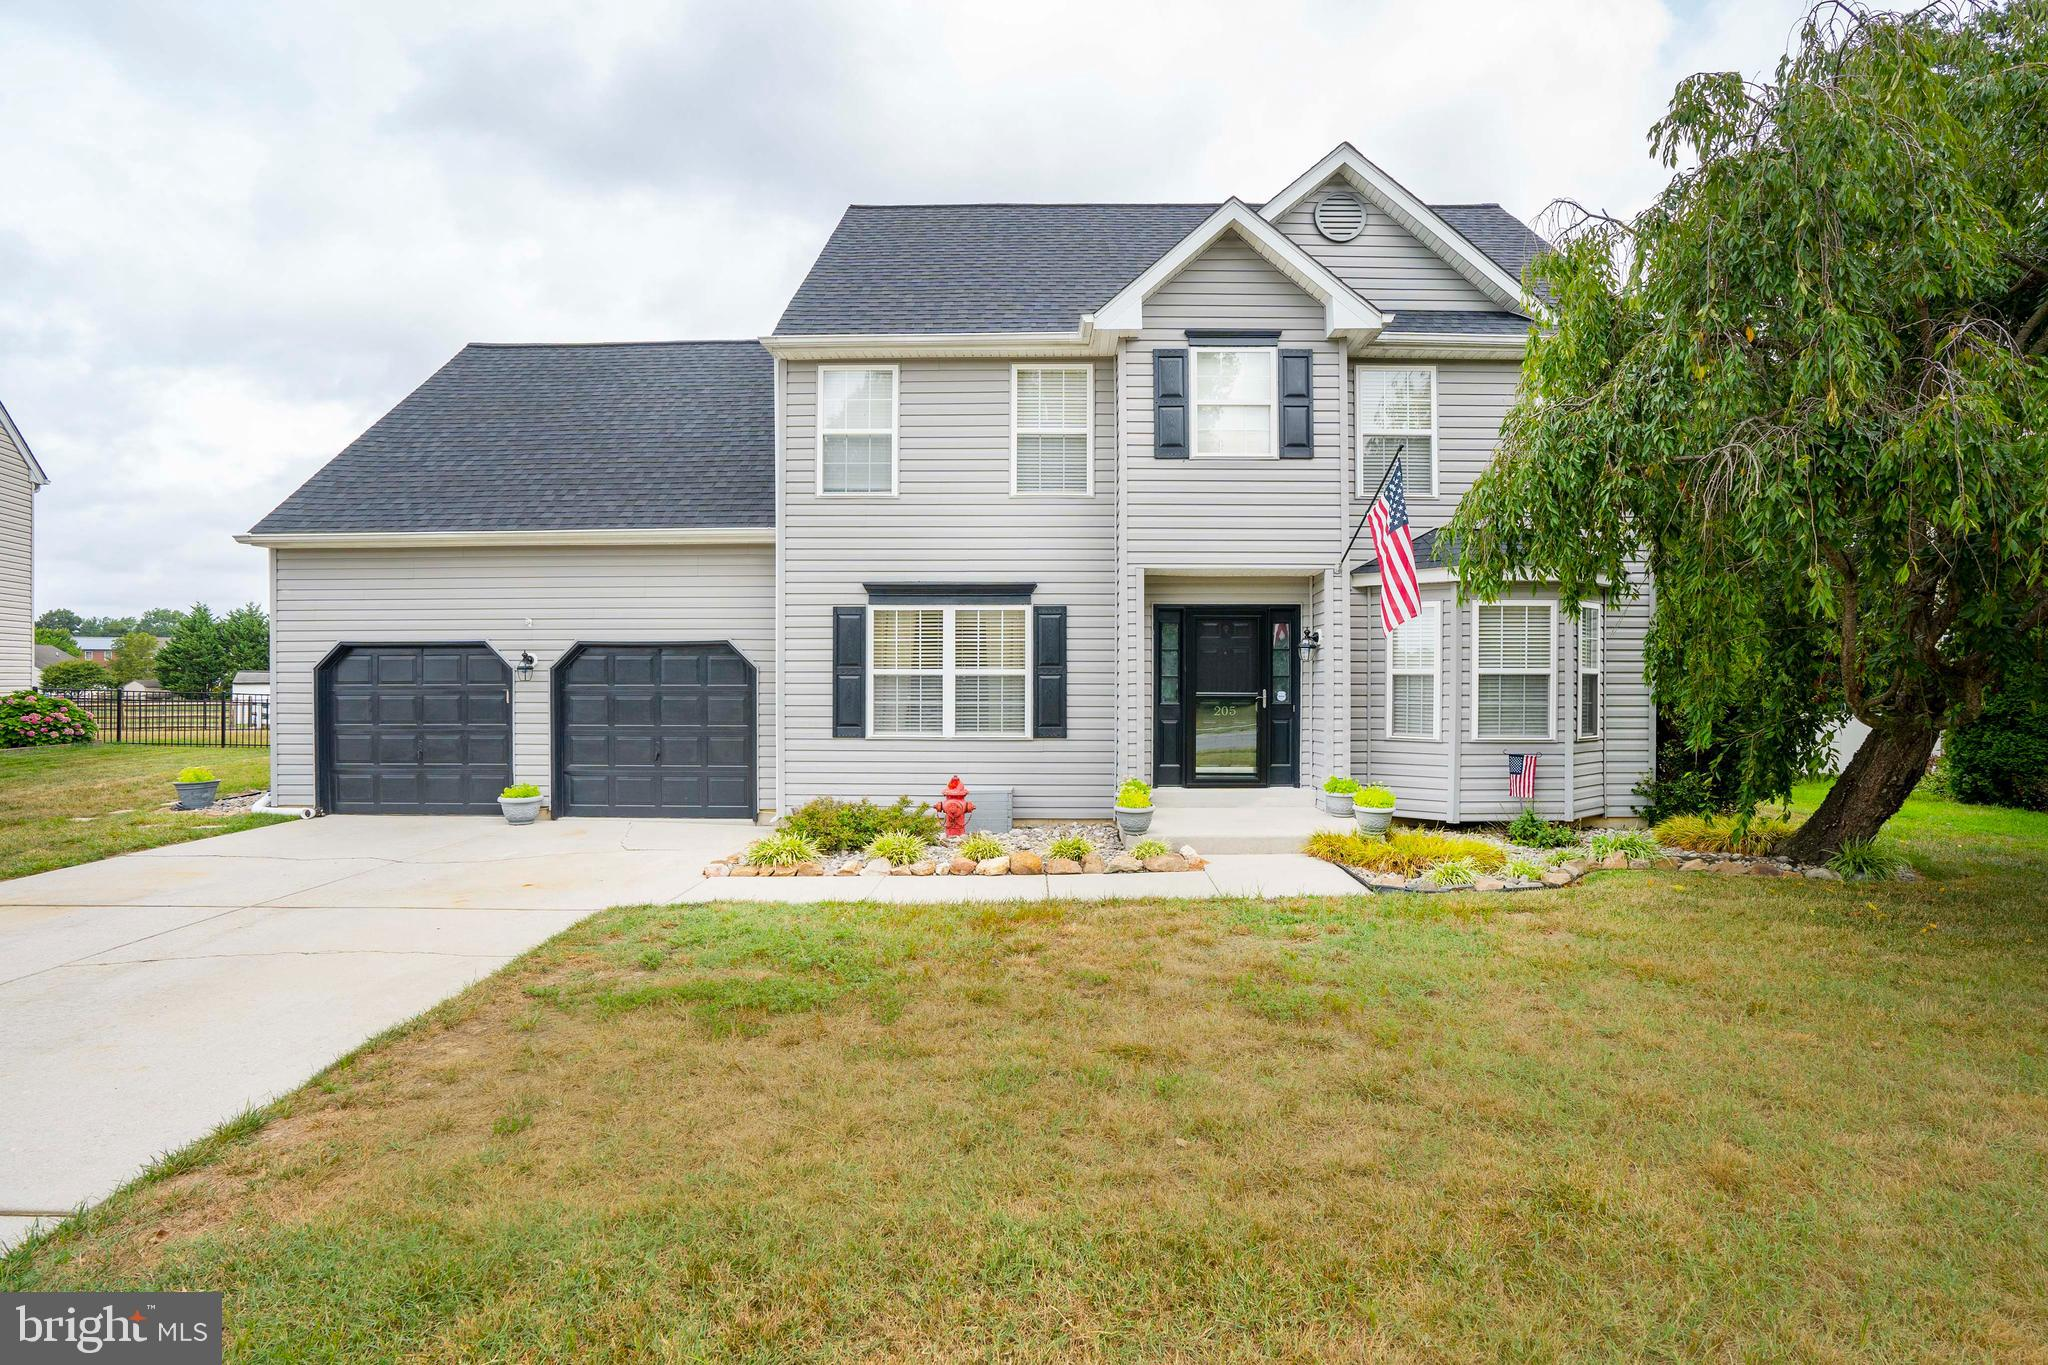 **Highest and Final Deadline 8/29 at 8pm** Seller will make a decision by Monday at noon. Welcome to 205 Bellmont circle, in the desired community of Townsend Station.  This beautiful,  well maintained home is located in the Appoquinimink  school district.  Entering the home you will find beautiful laminate flooring throughout.  The Kitchen with eat-in breakfast area has recently been updated. You will find an added pellet stove in the main living room  to create a warm cozy atmosphere. The second floor  consists of 4 spacious bedrooms, 2 full baths as well as a laundry area.  In the master you will find vaulted ceiling, a large master bath with a soaking tub and double vanity, as well as walk in closet. Entertain guests outside on the concrete patio with a beautiful trellis and then relax in the beautiful spa with a gazebo. The spacious  back yard is fenced.  This home also has a large 2 car garage with access to the back yard.   An irrigation system is located in the front yard to keep the lawn plush. Have confidence during bad weather with a newer roof with 50 year architectural shingles.  Do not miss an opportunity to own a great home! Schedule your tour today!!